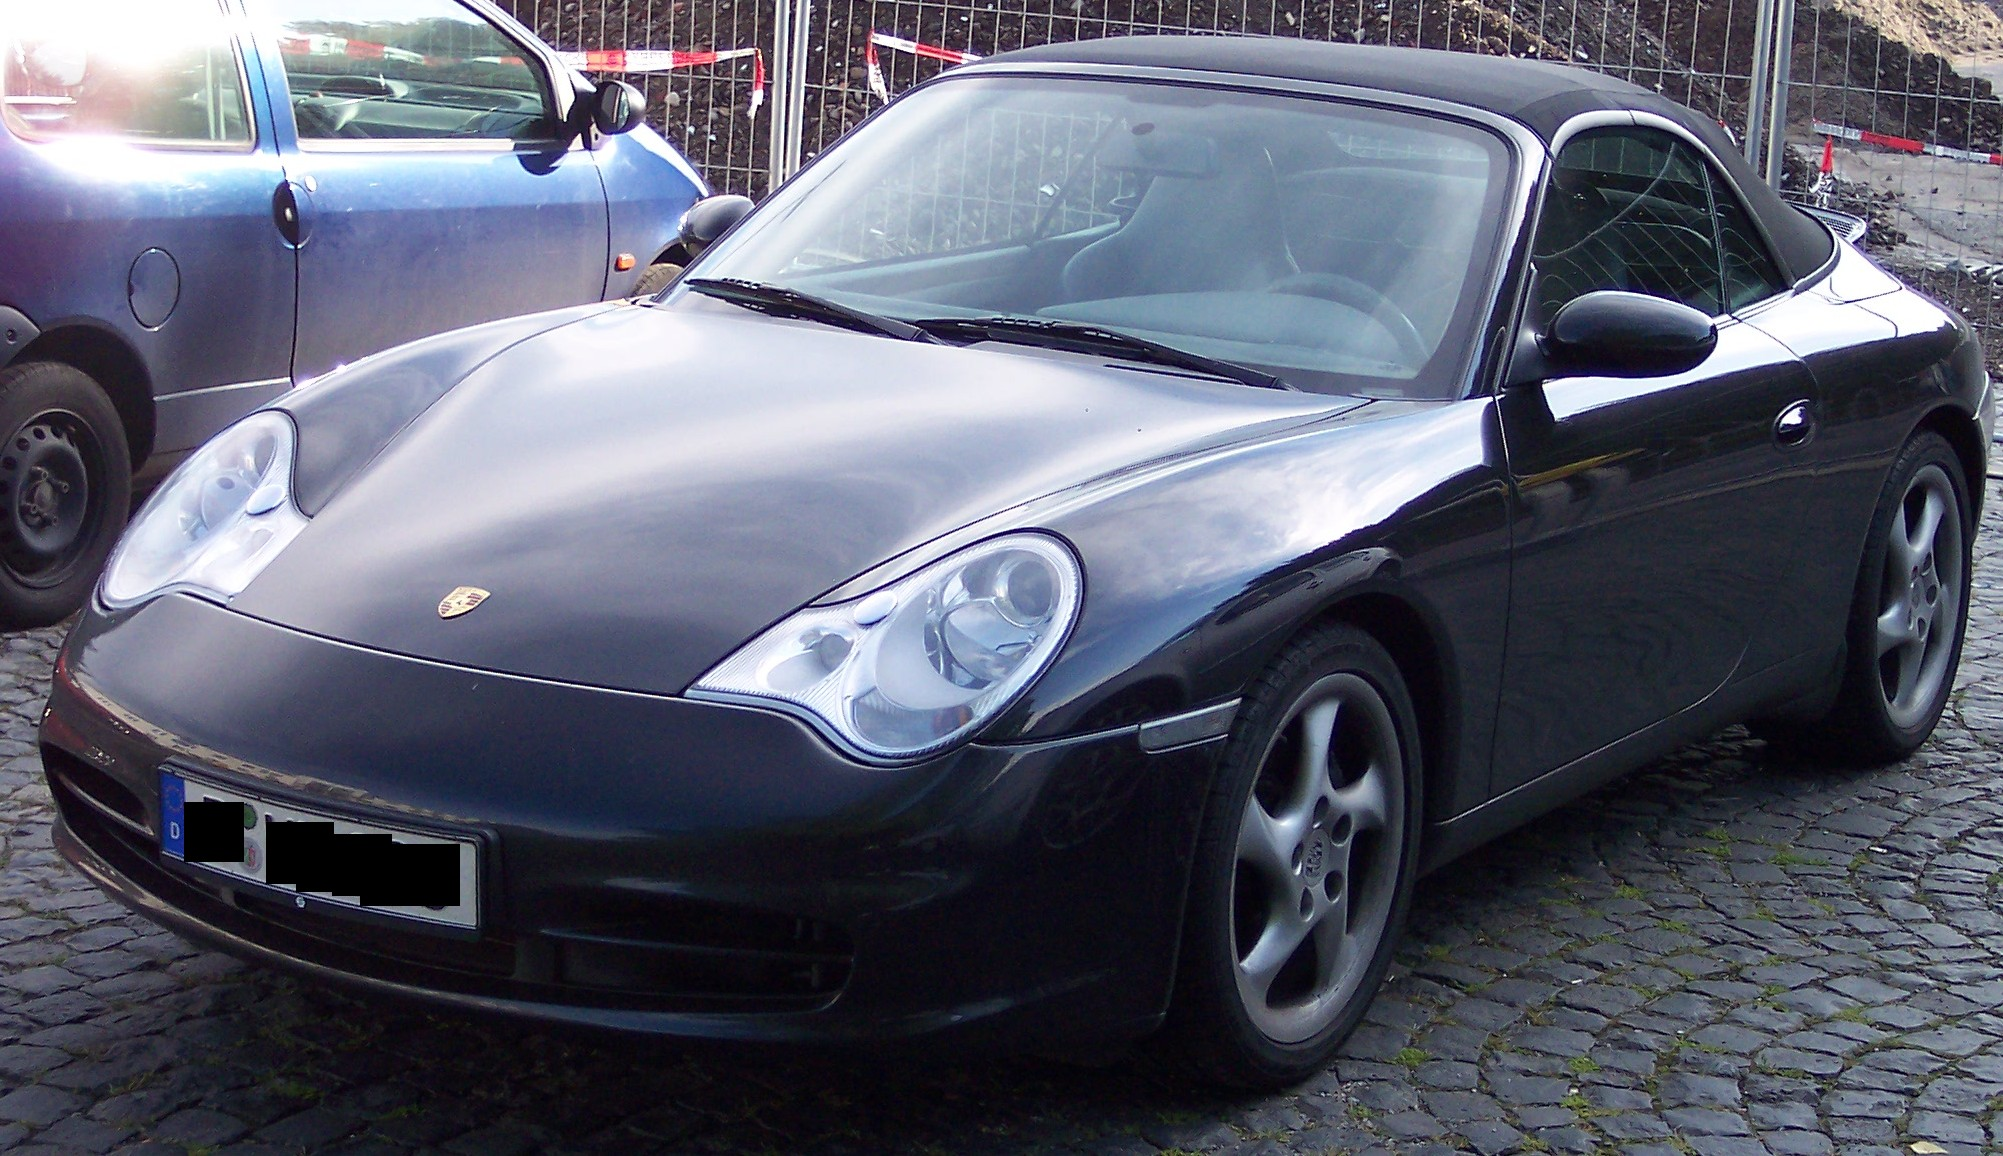 file porsche 996 cabrio. Black Bedroom Furniture Sets. Home Design Ideas